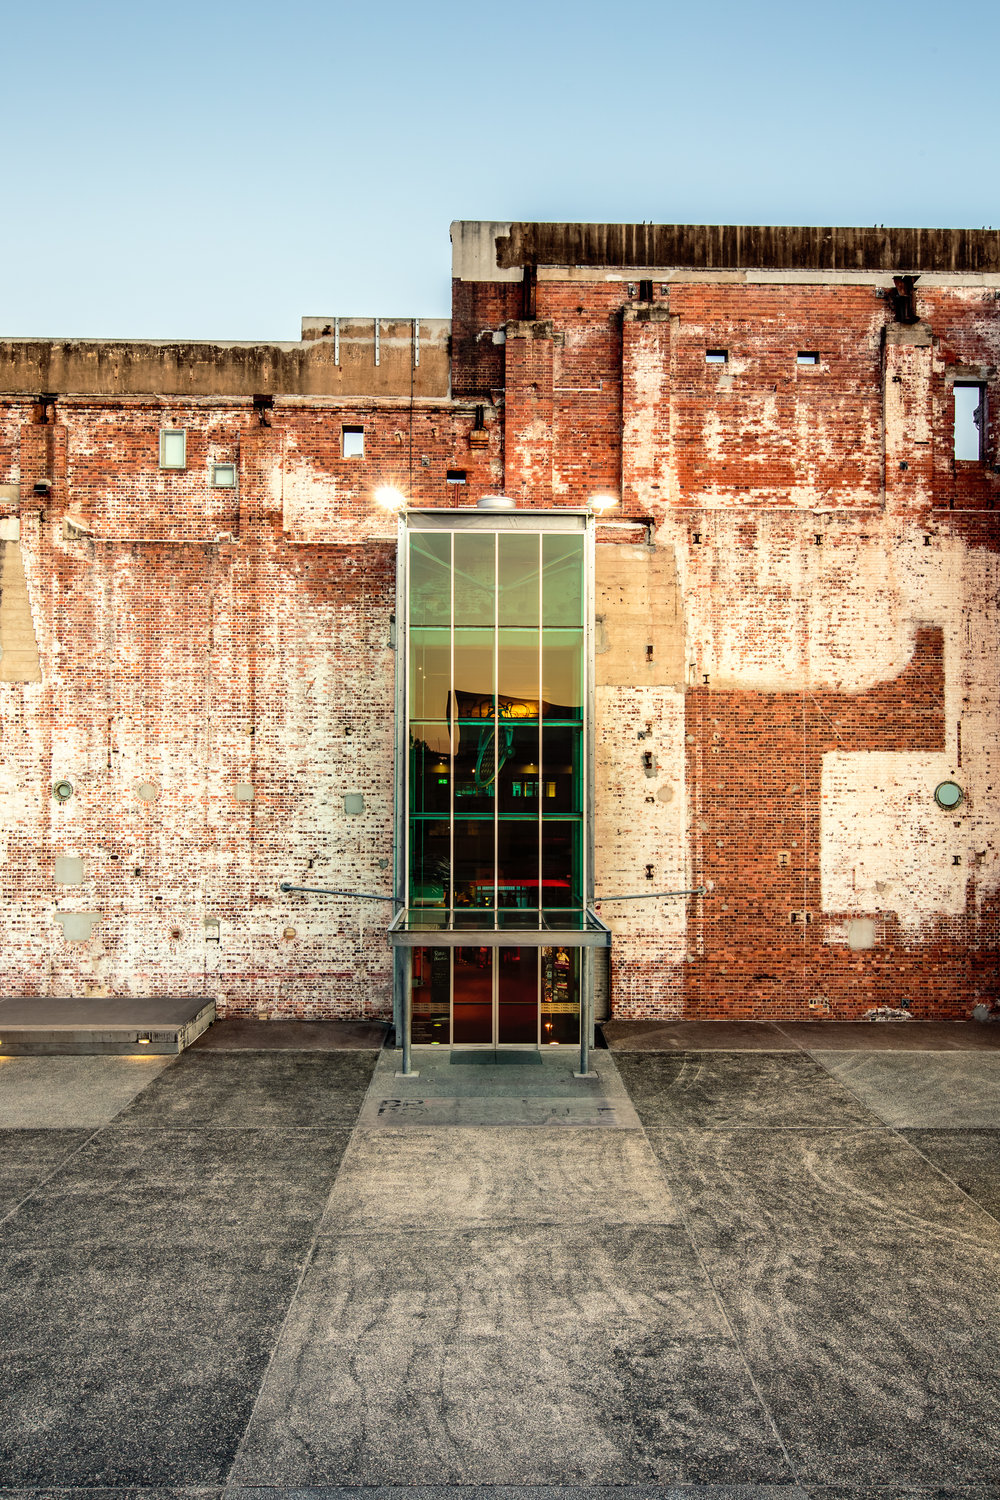 Architectural-photography-Brisbane-Powerhouse.jpg